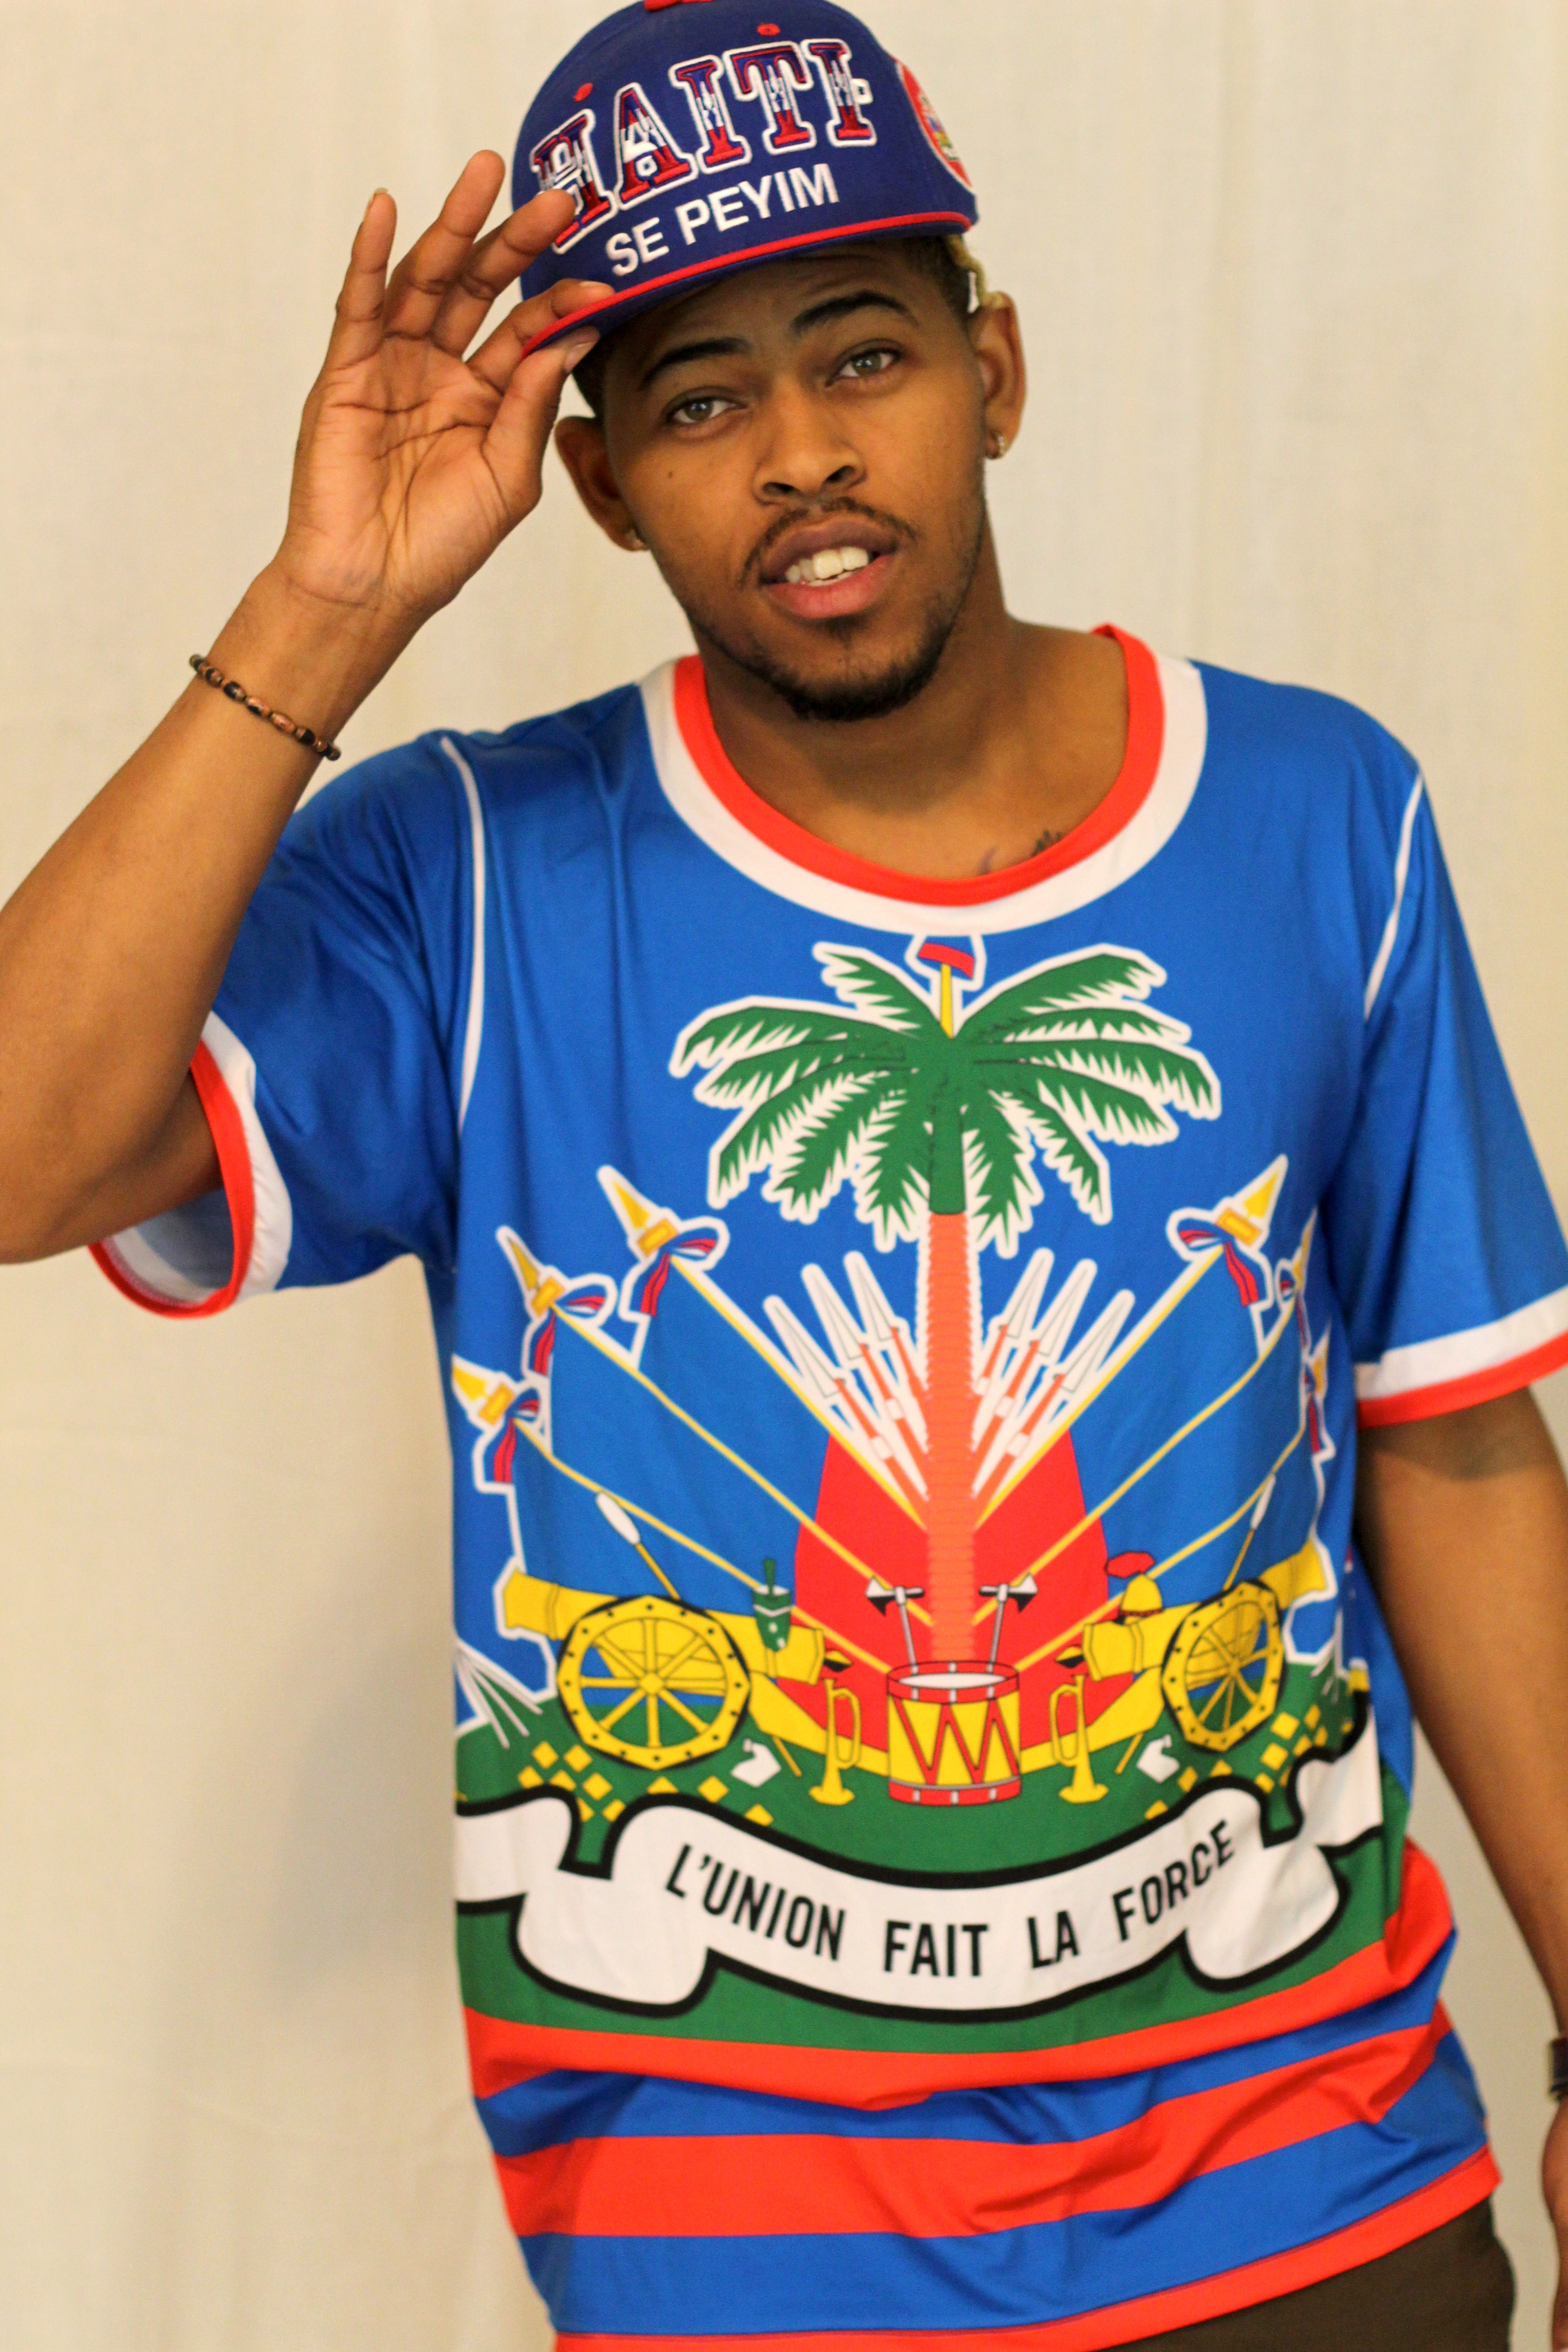 images/Haiti image new t-shirt for men.jpg